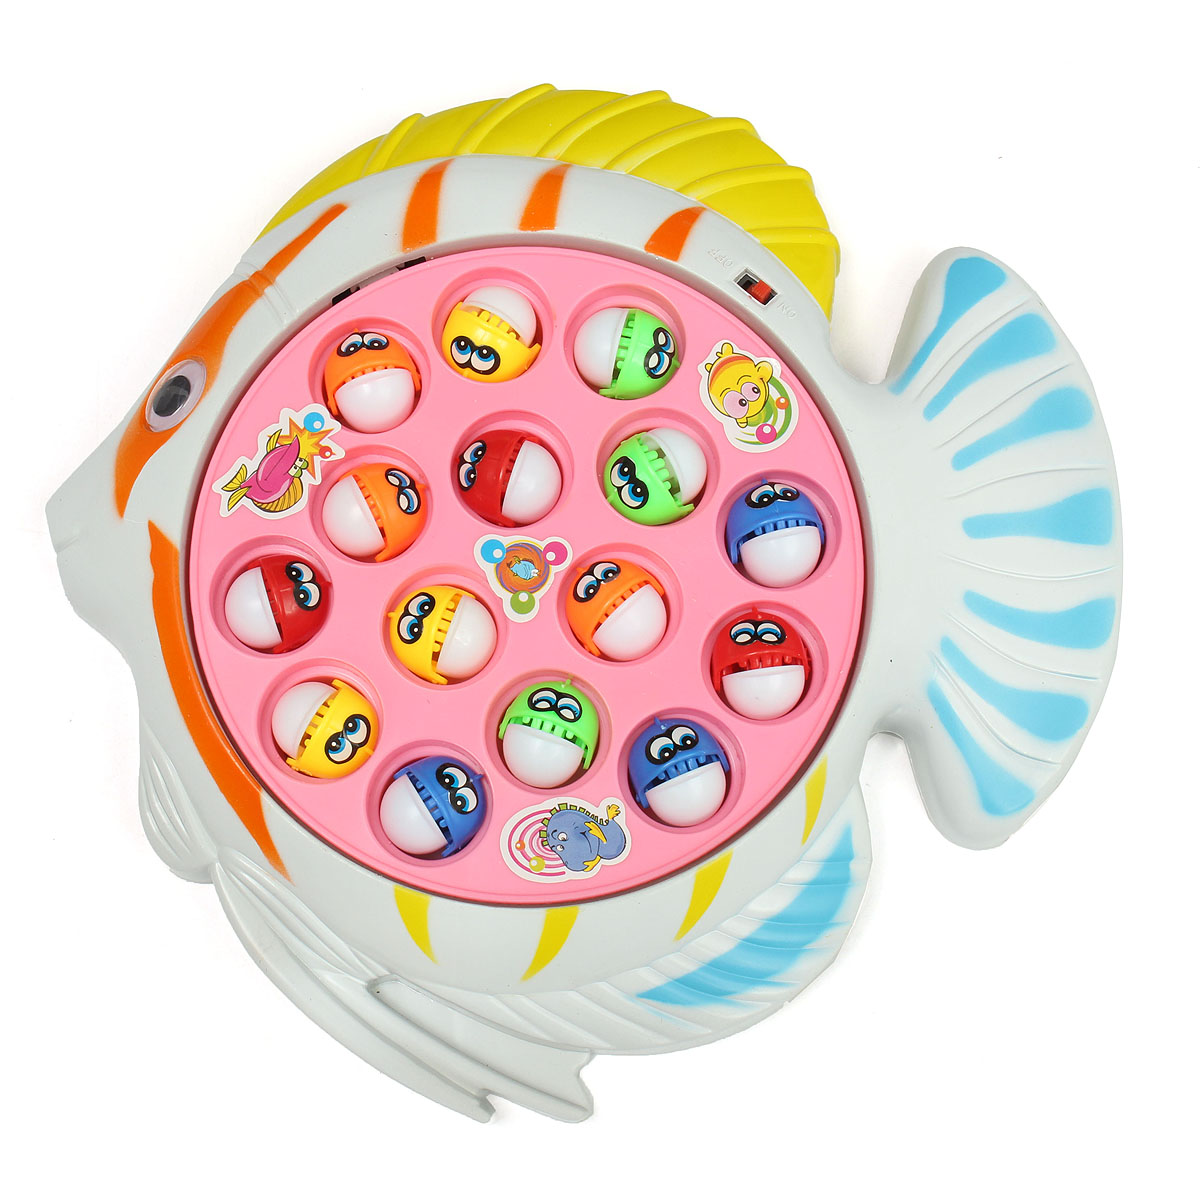 Fish Game Toy : Fishing game toy random color children toys alex nld